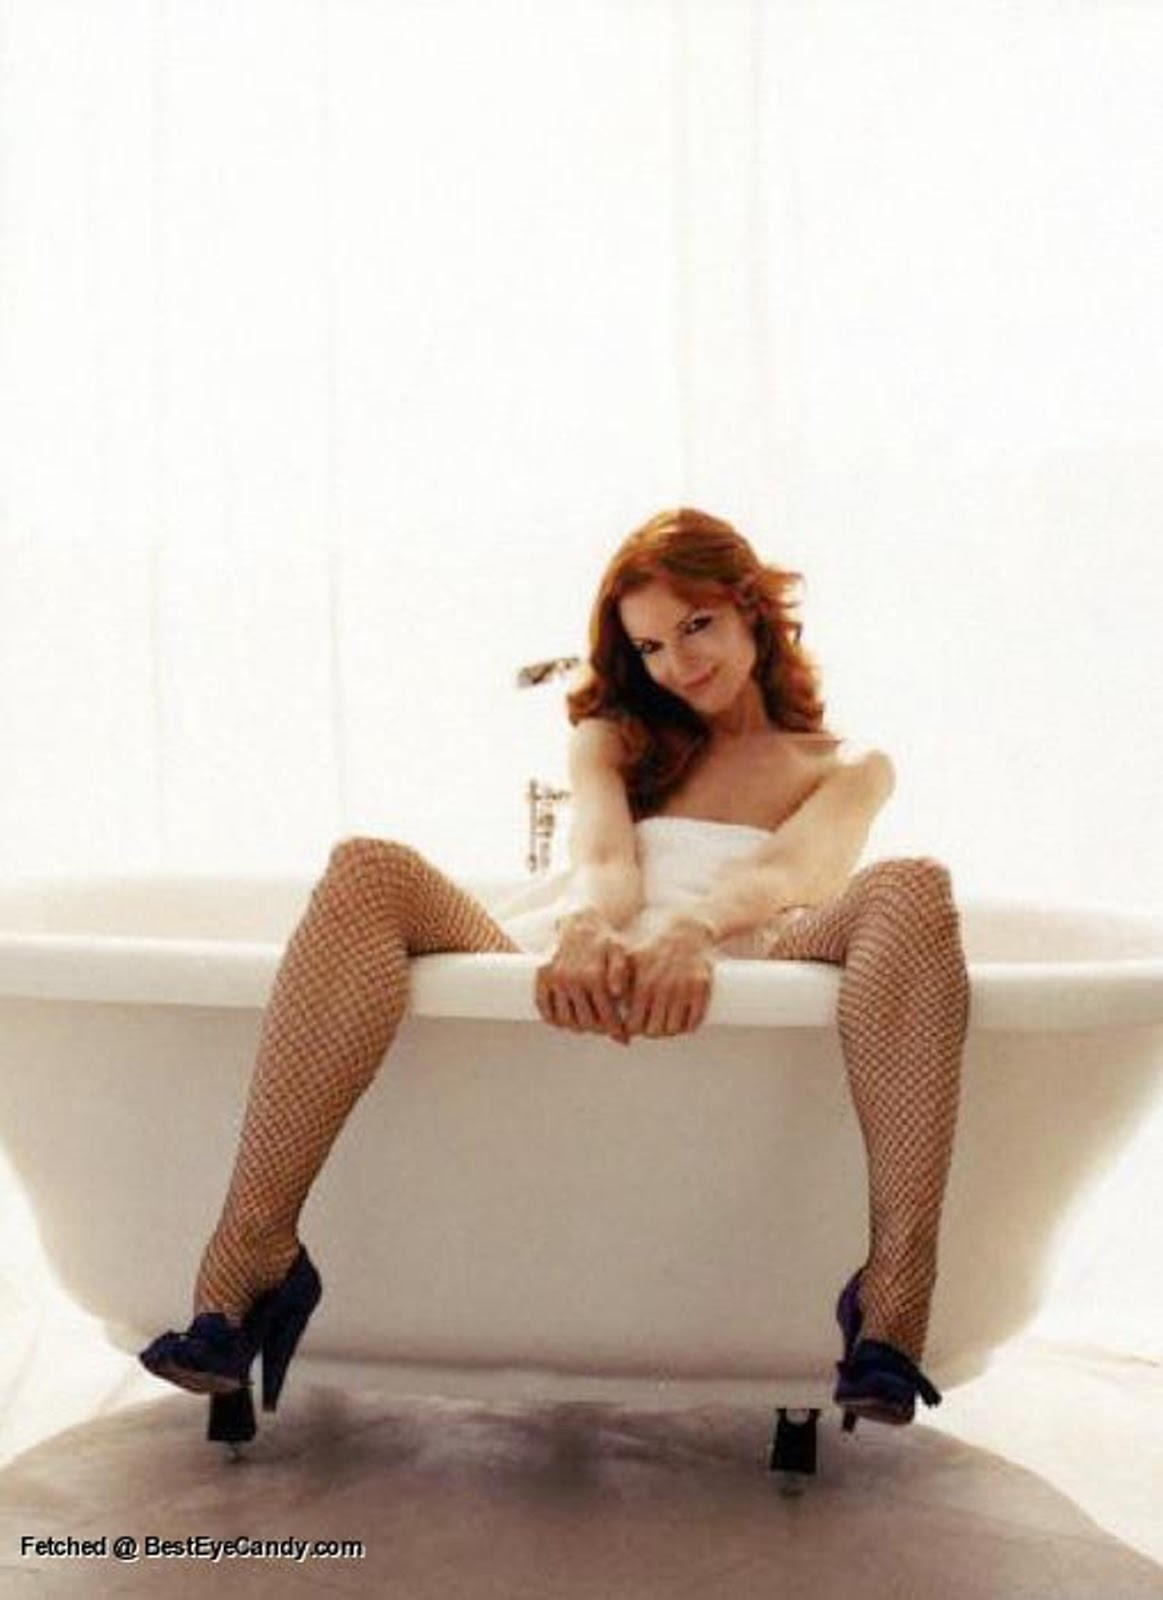 Marcia cross naked shower photos